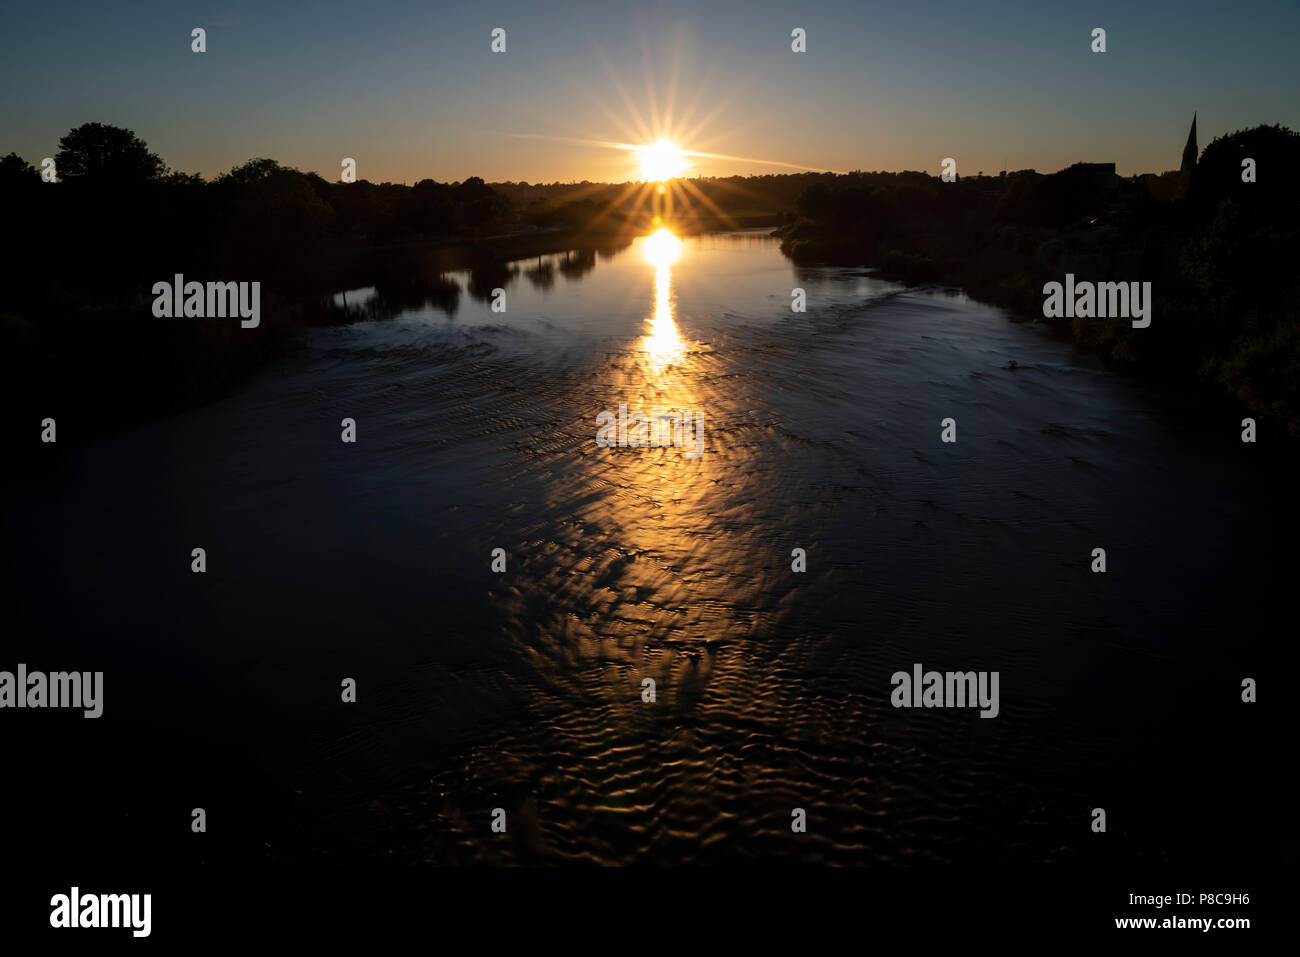 The River Tweed in Kelso Scotland, July 2018 heat wave, low water levels. Summer evening. Sunset, and turbulence in very shallow water over the rocky  - Stock Image